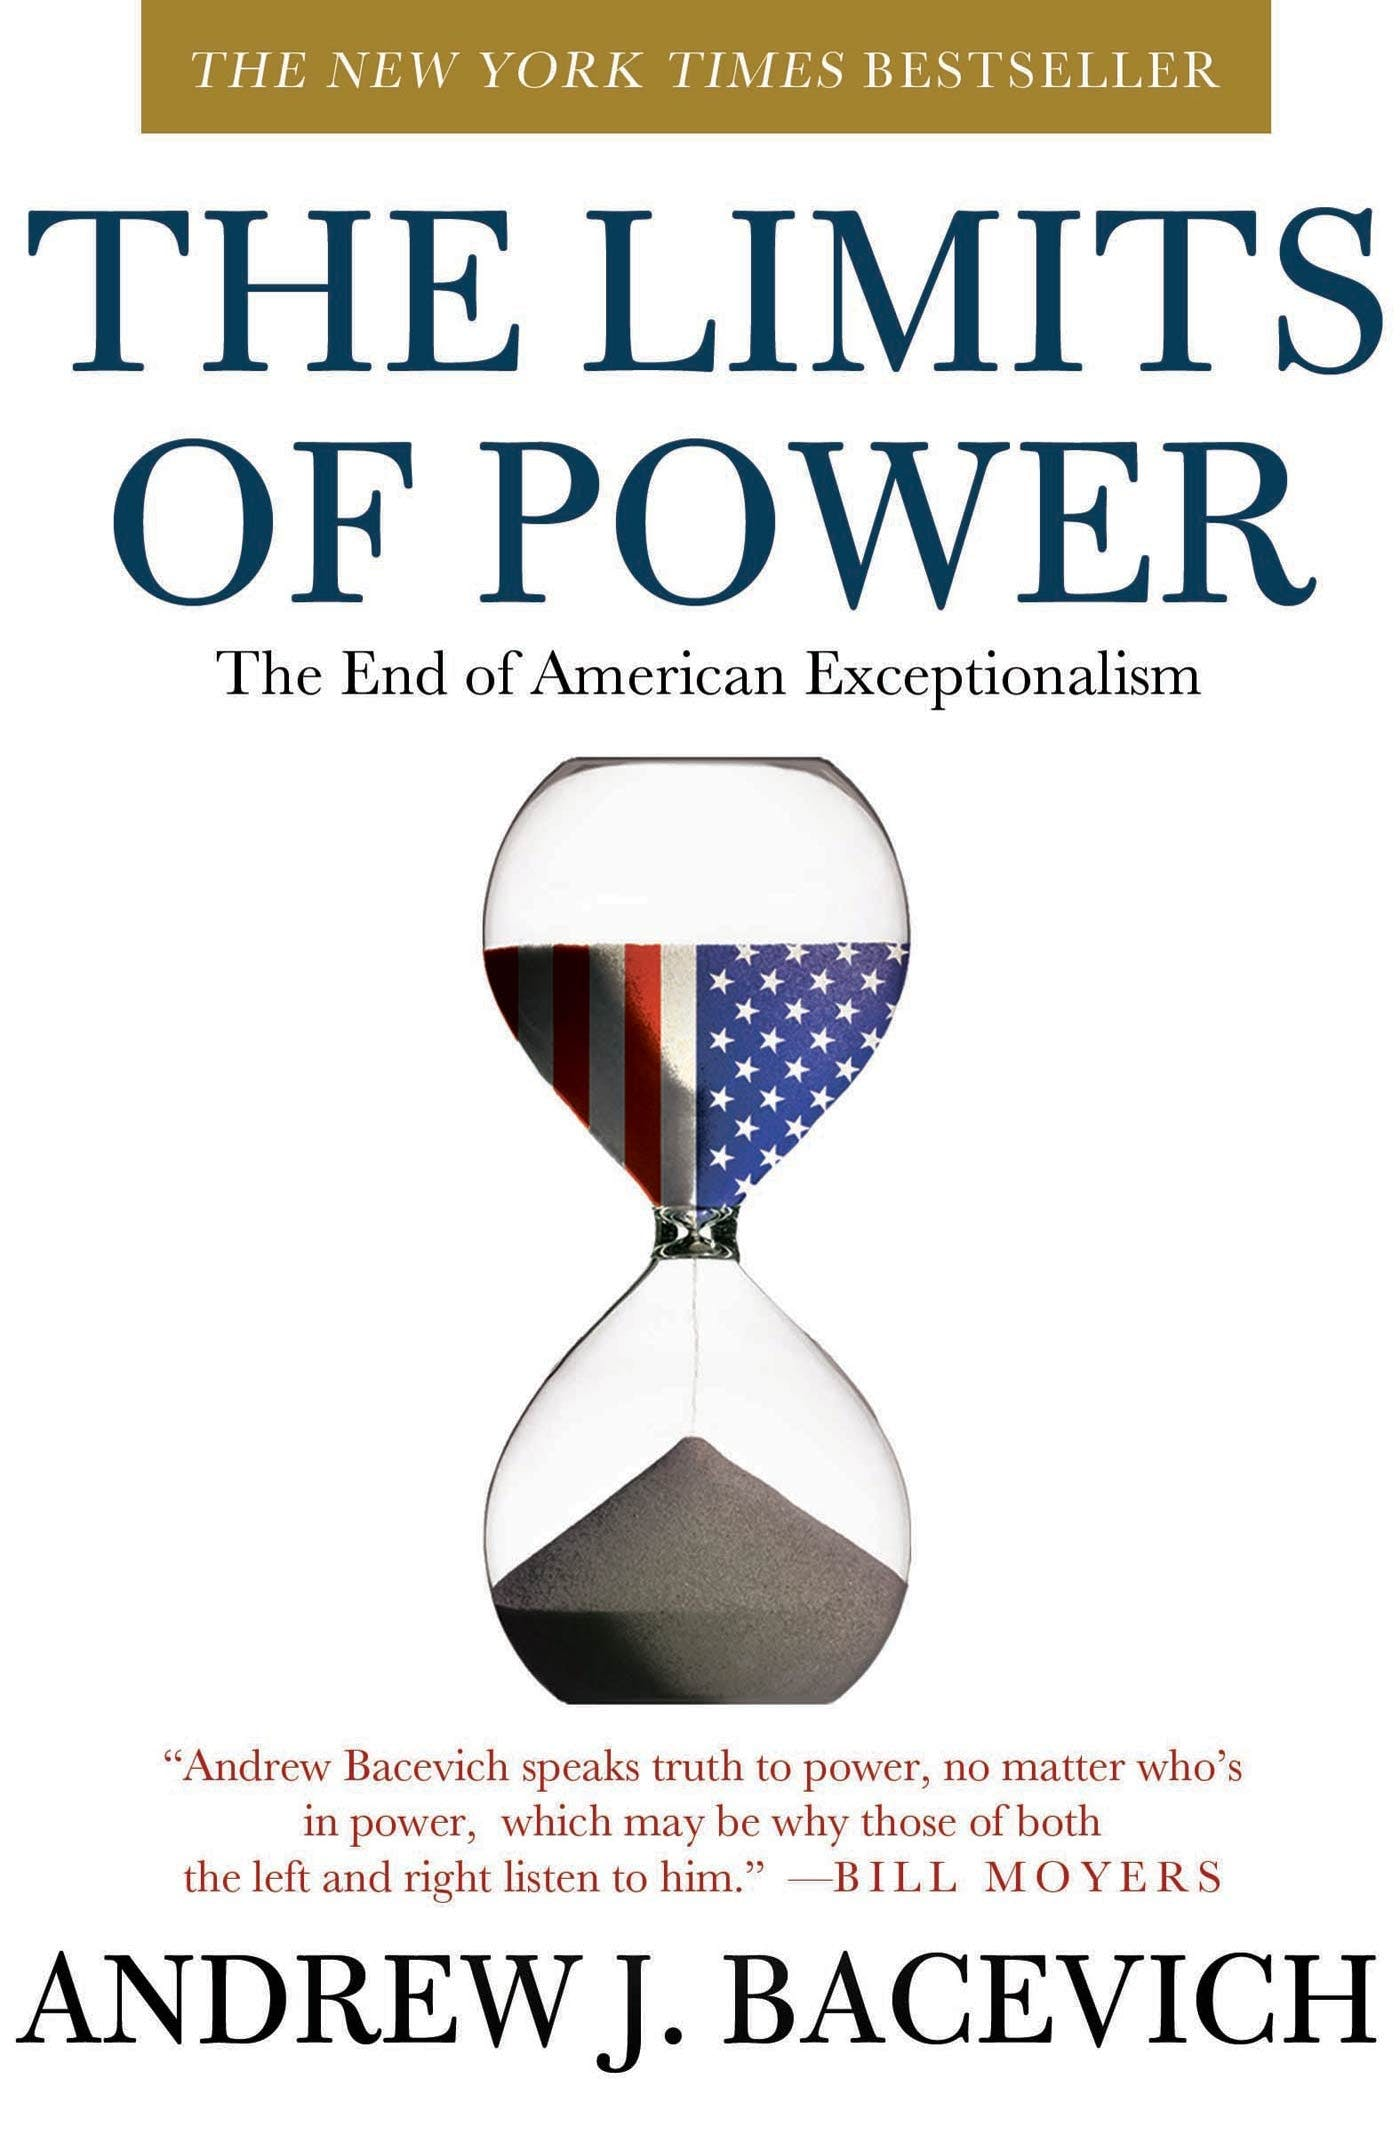 Image of The Limits of Power